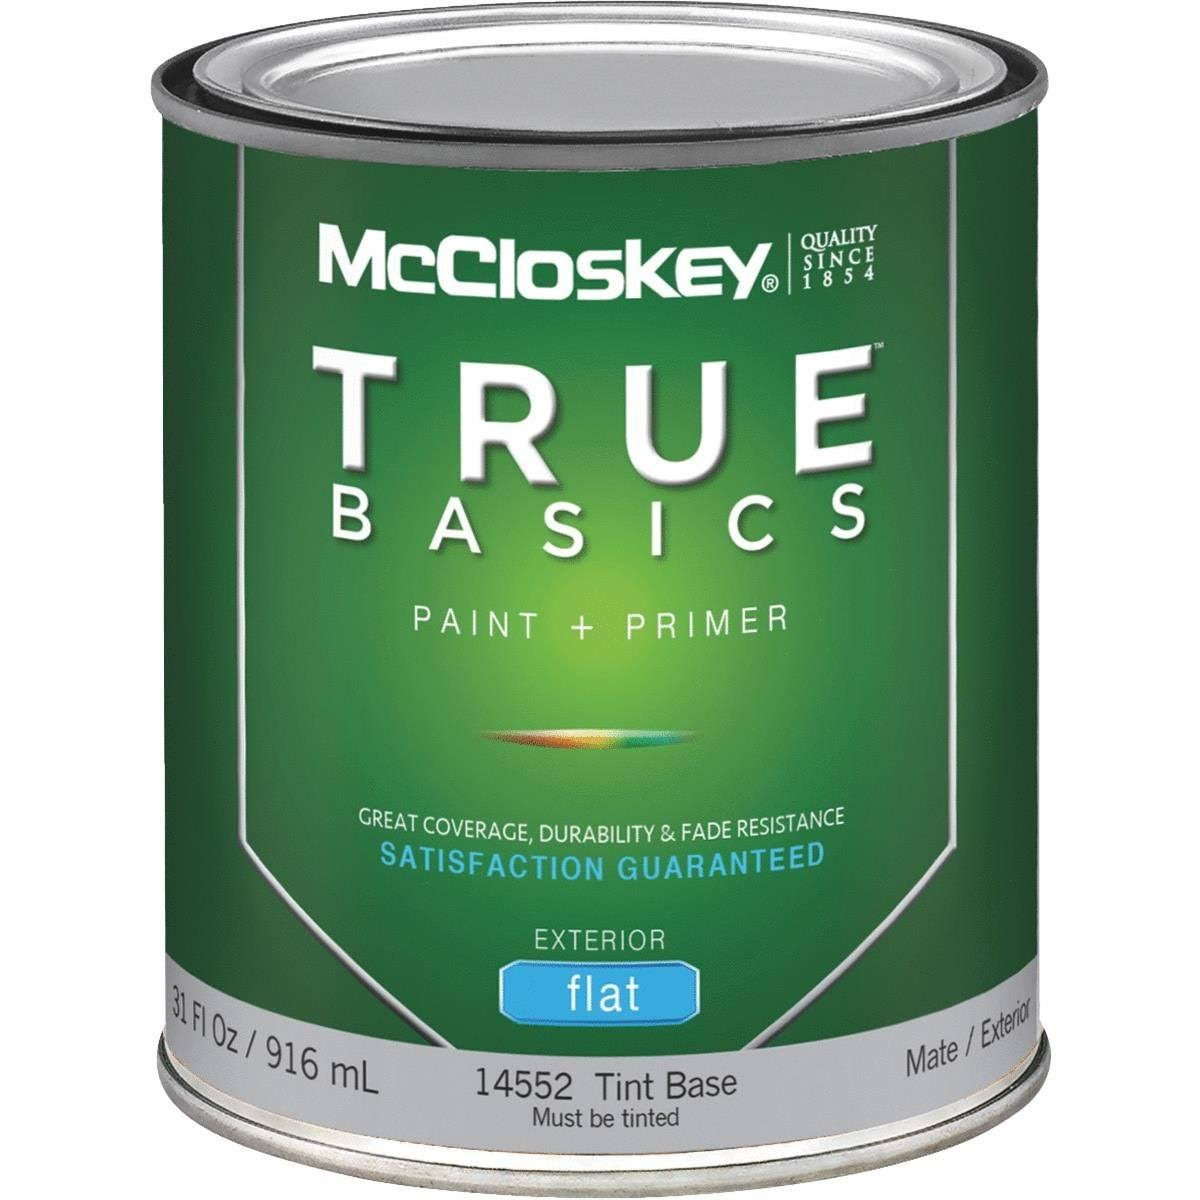 McCloskey True Basics Latex Paint & Primer Flat Exterior House Paint - 916ml